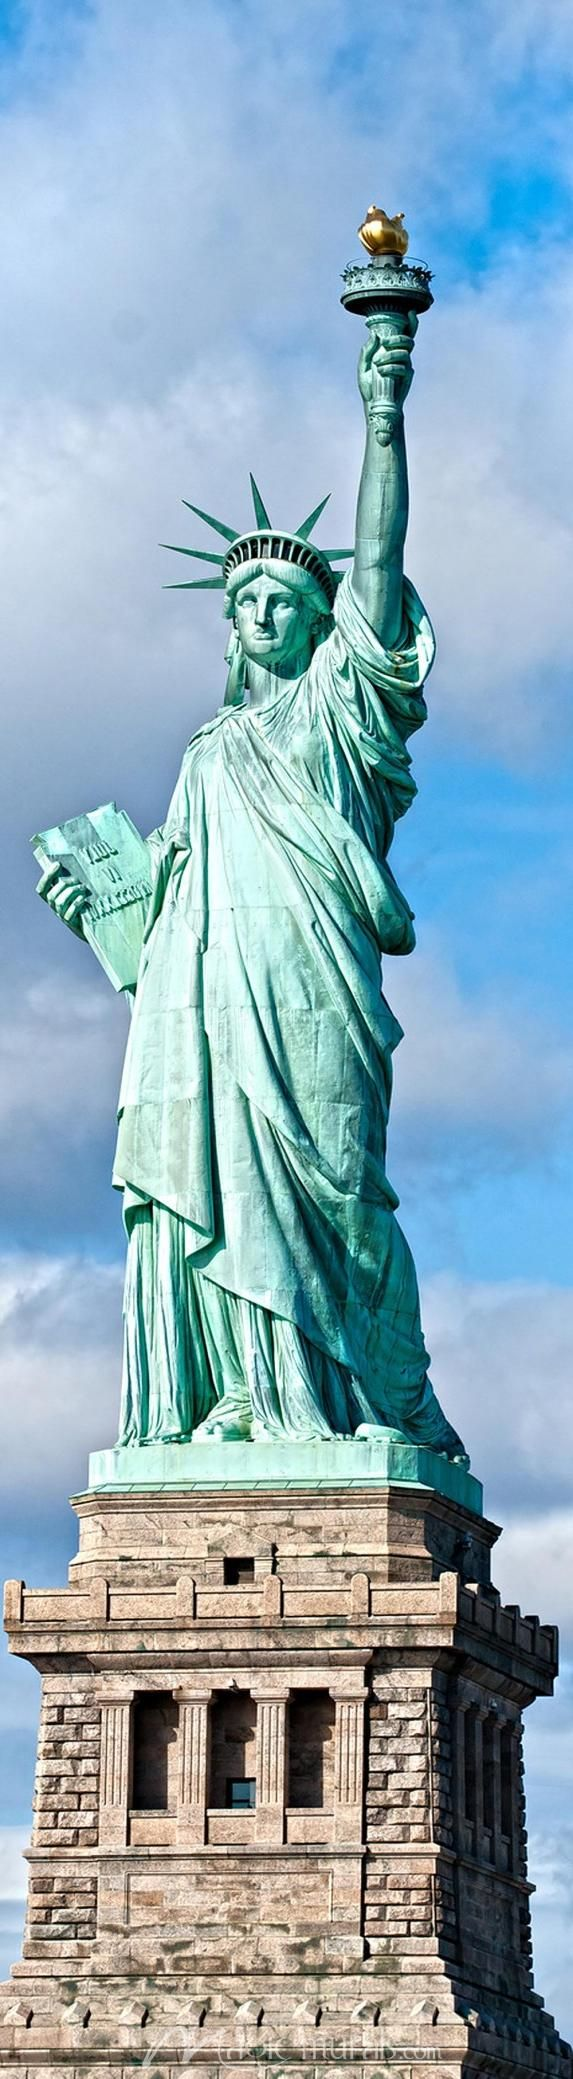 Drawn statue of liberty sculpture Pinterest Liberty of a the